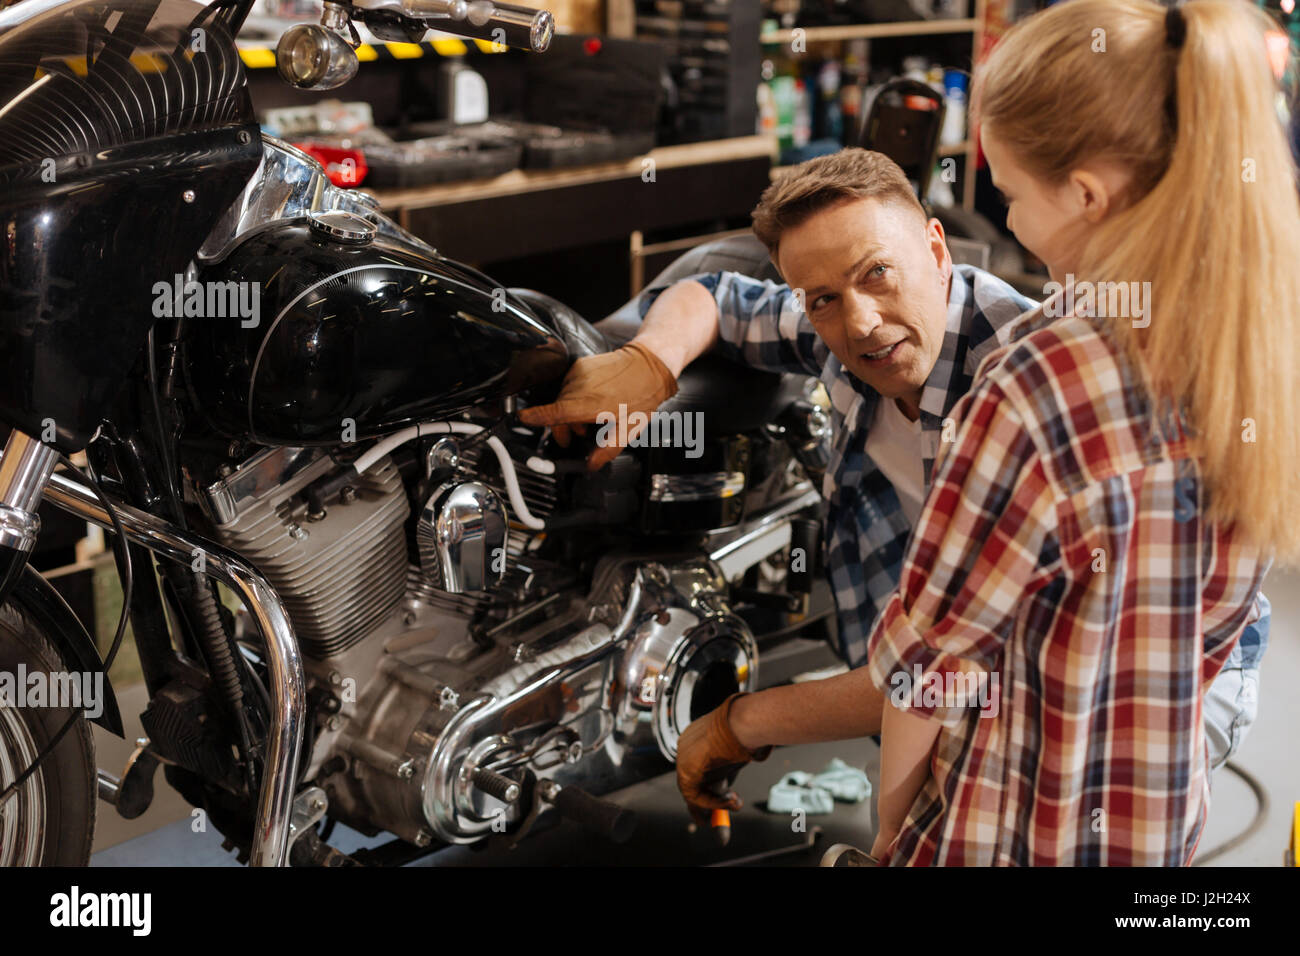 Dedicated skillful mechanic telling some interesting facts - Stock Image